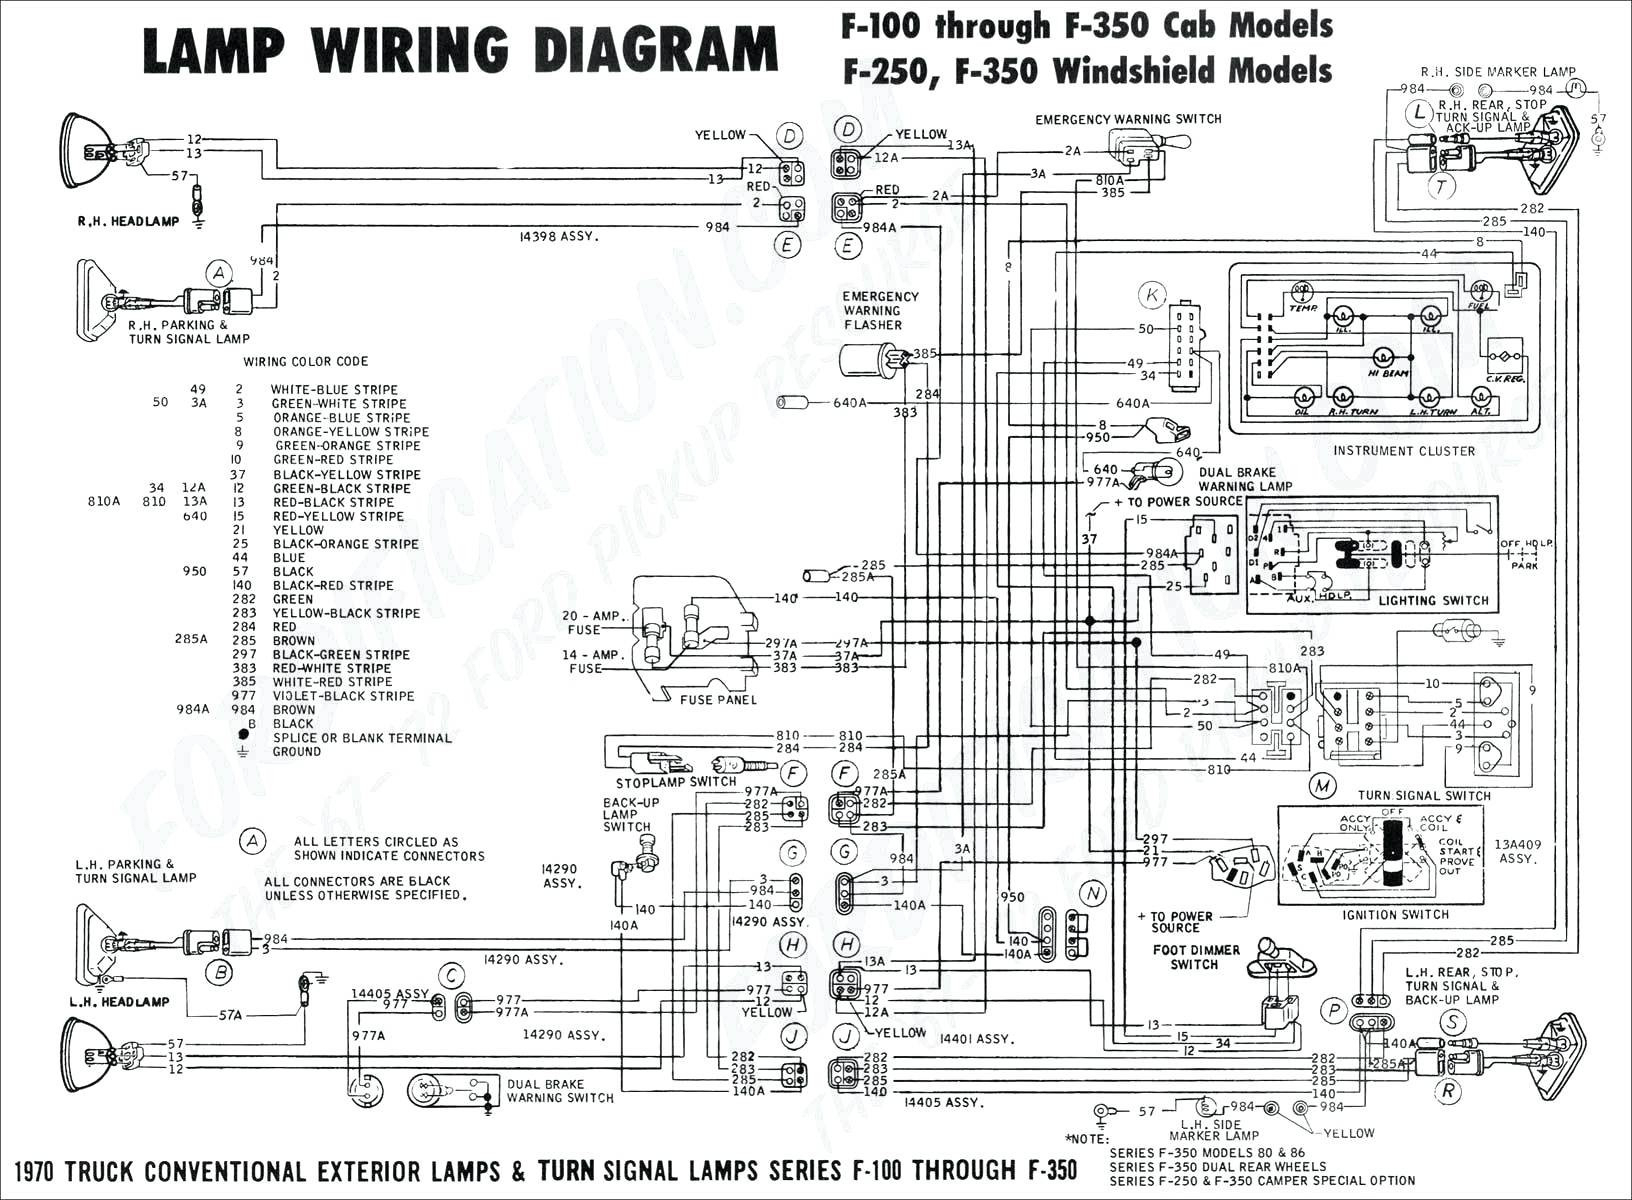 Abs Wiring Diagram - All Wiring Diagram